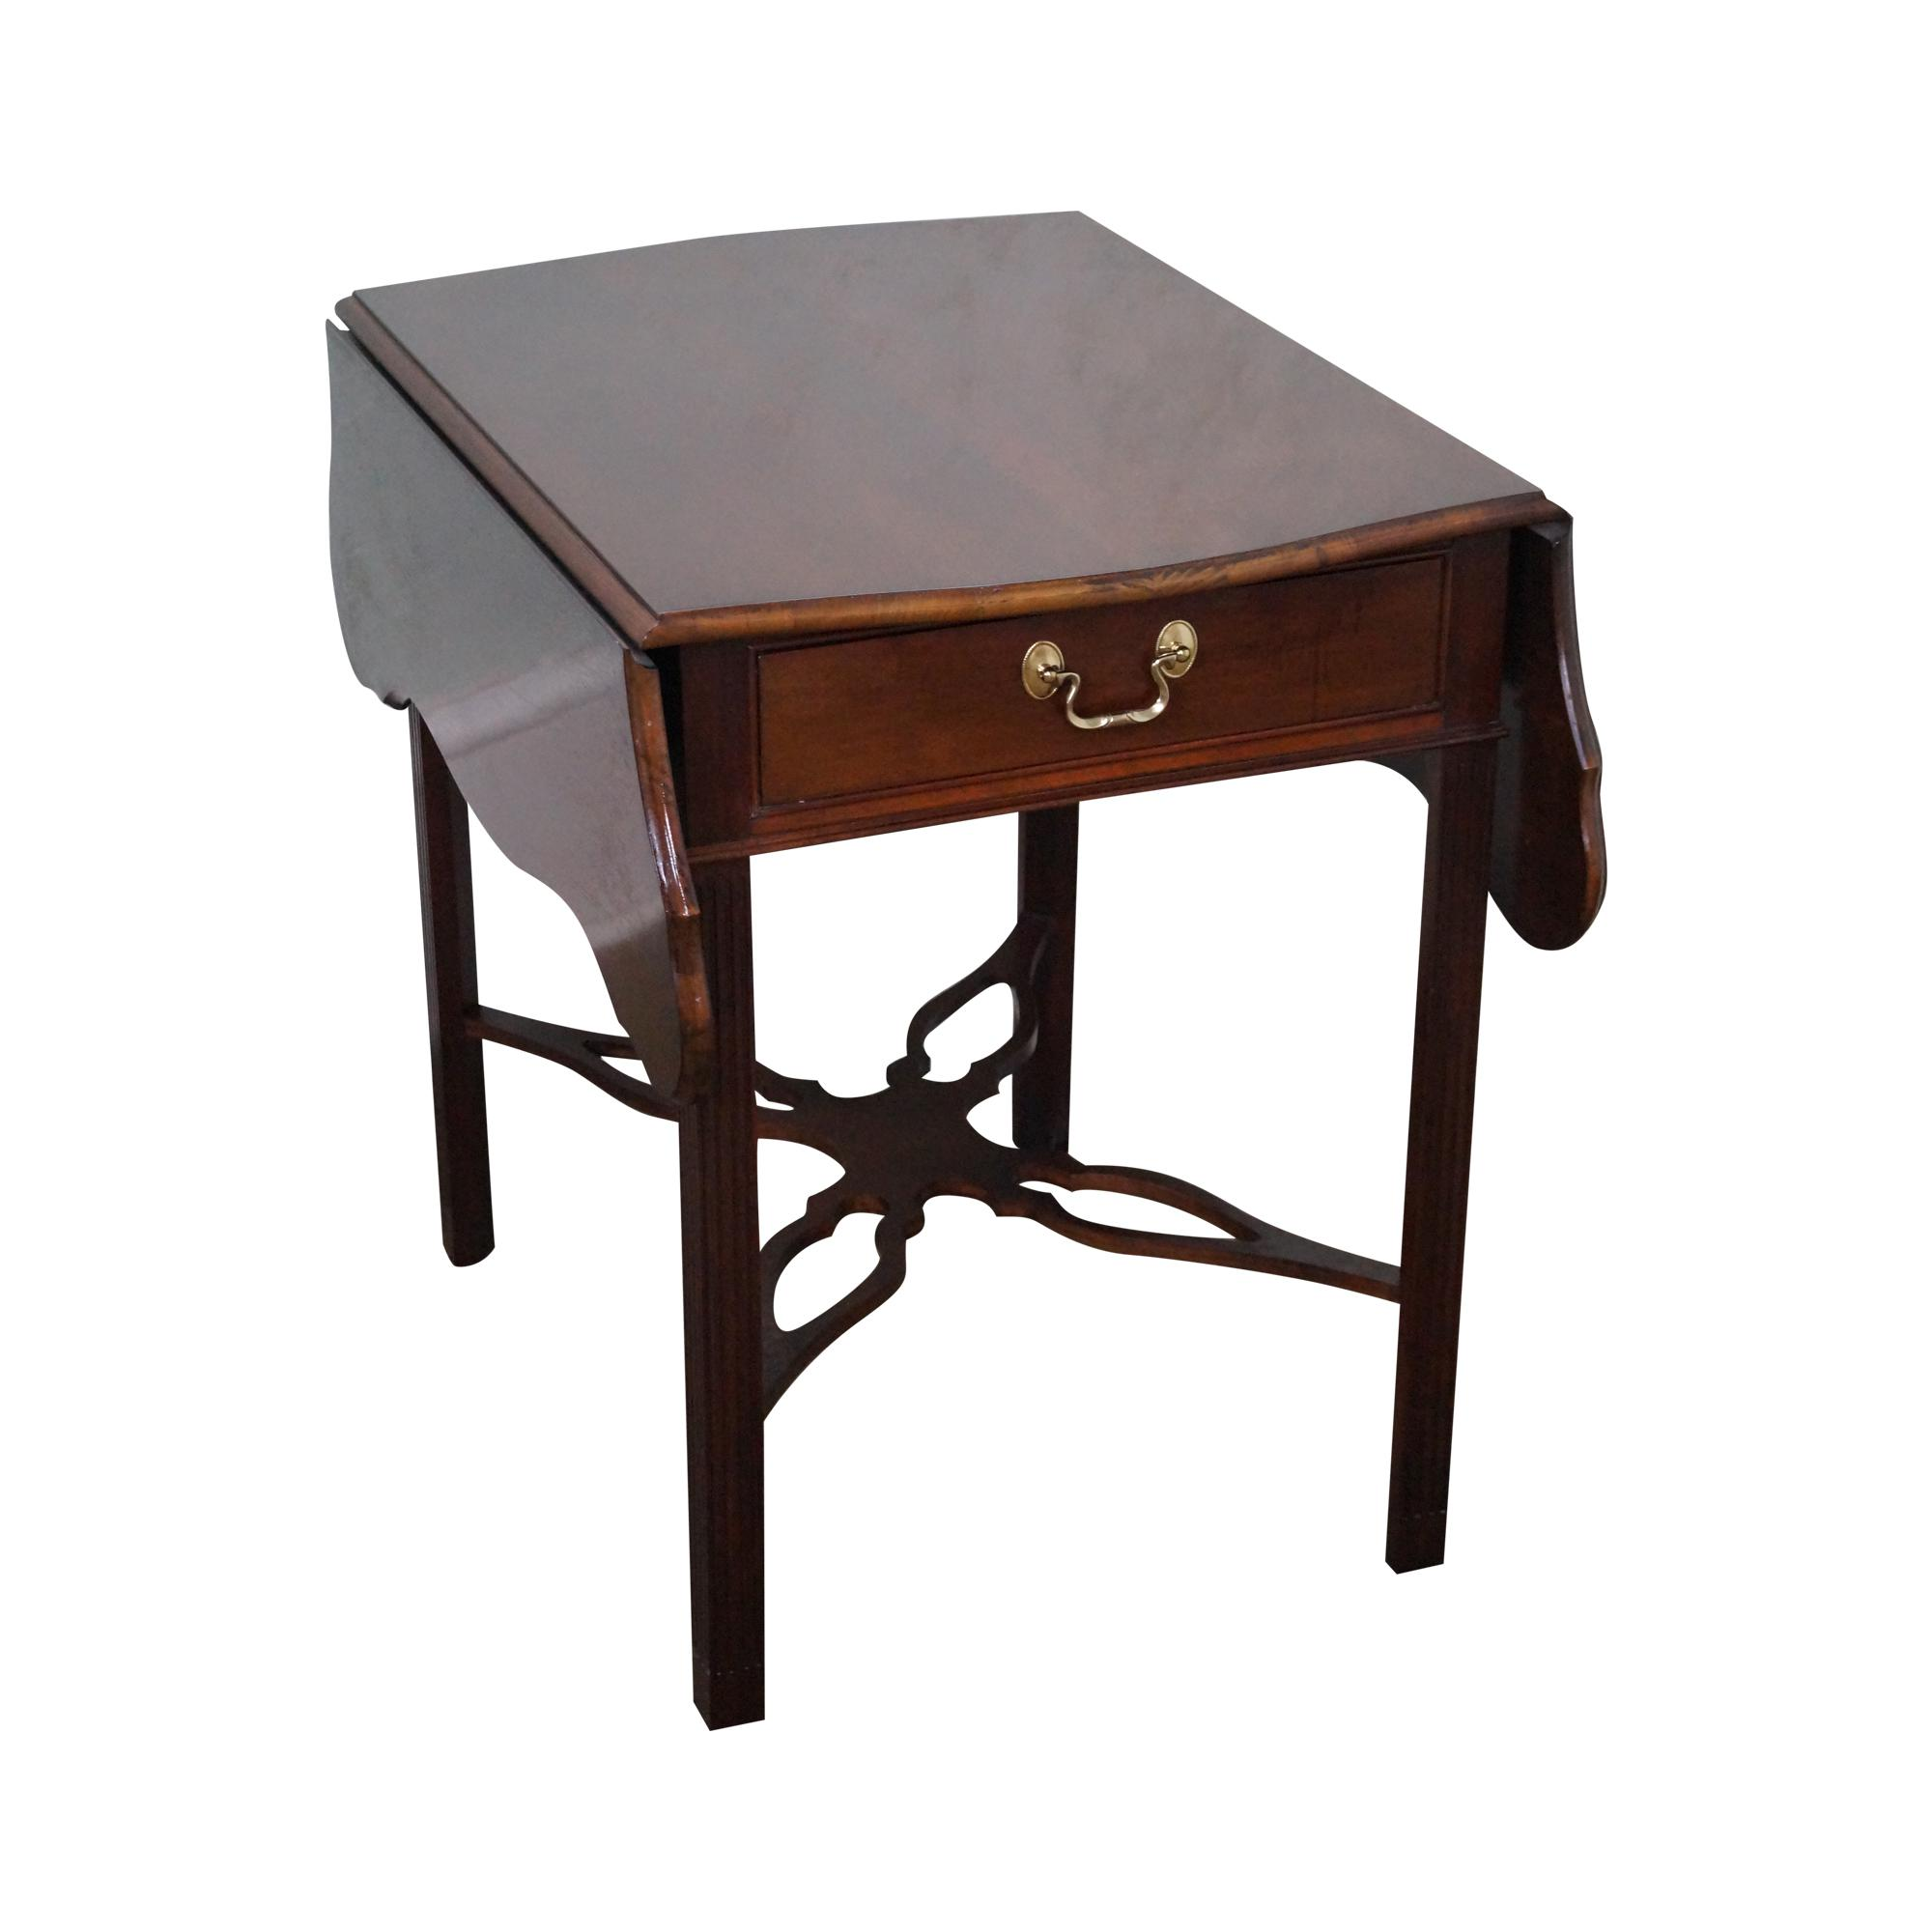 Councill Craftsman Mahogany Chippendale Drop Leaf Pembroke Table   Chairish